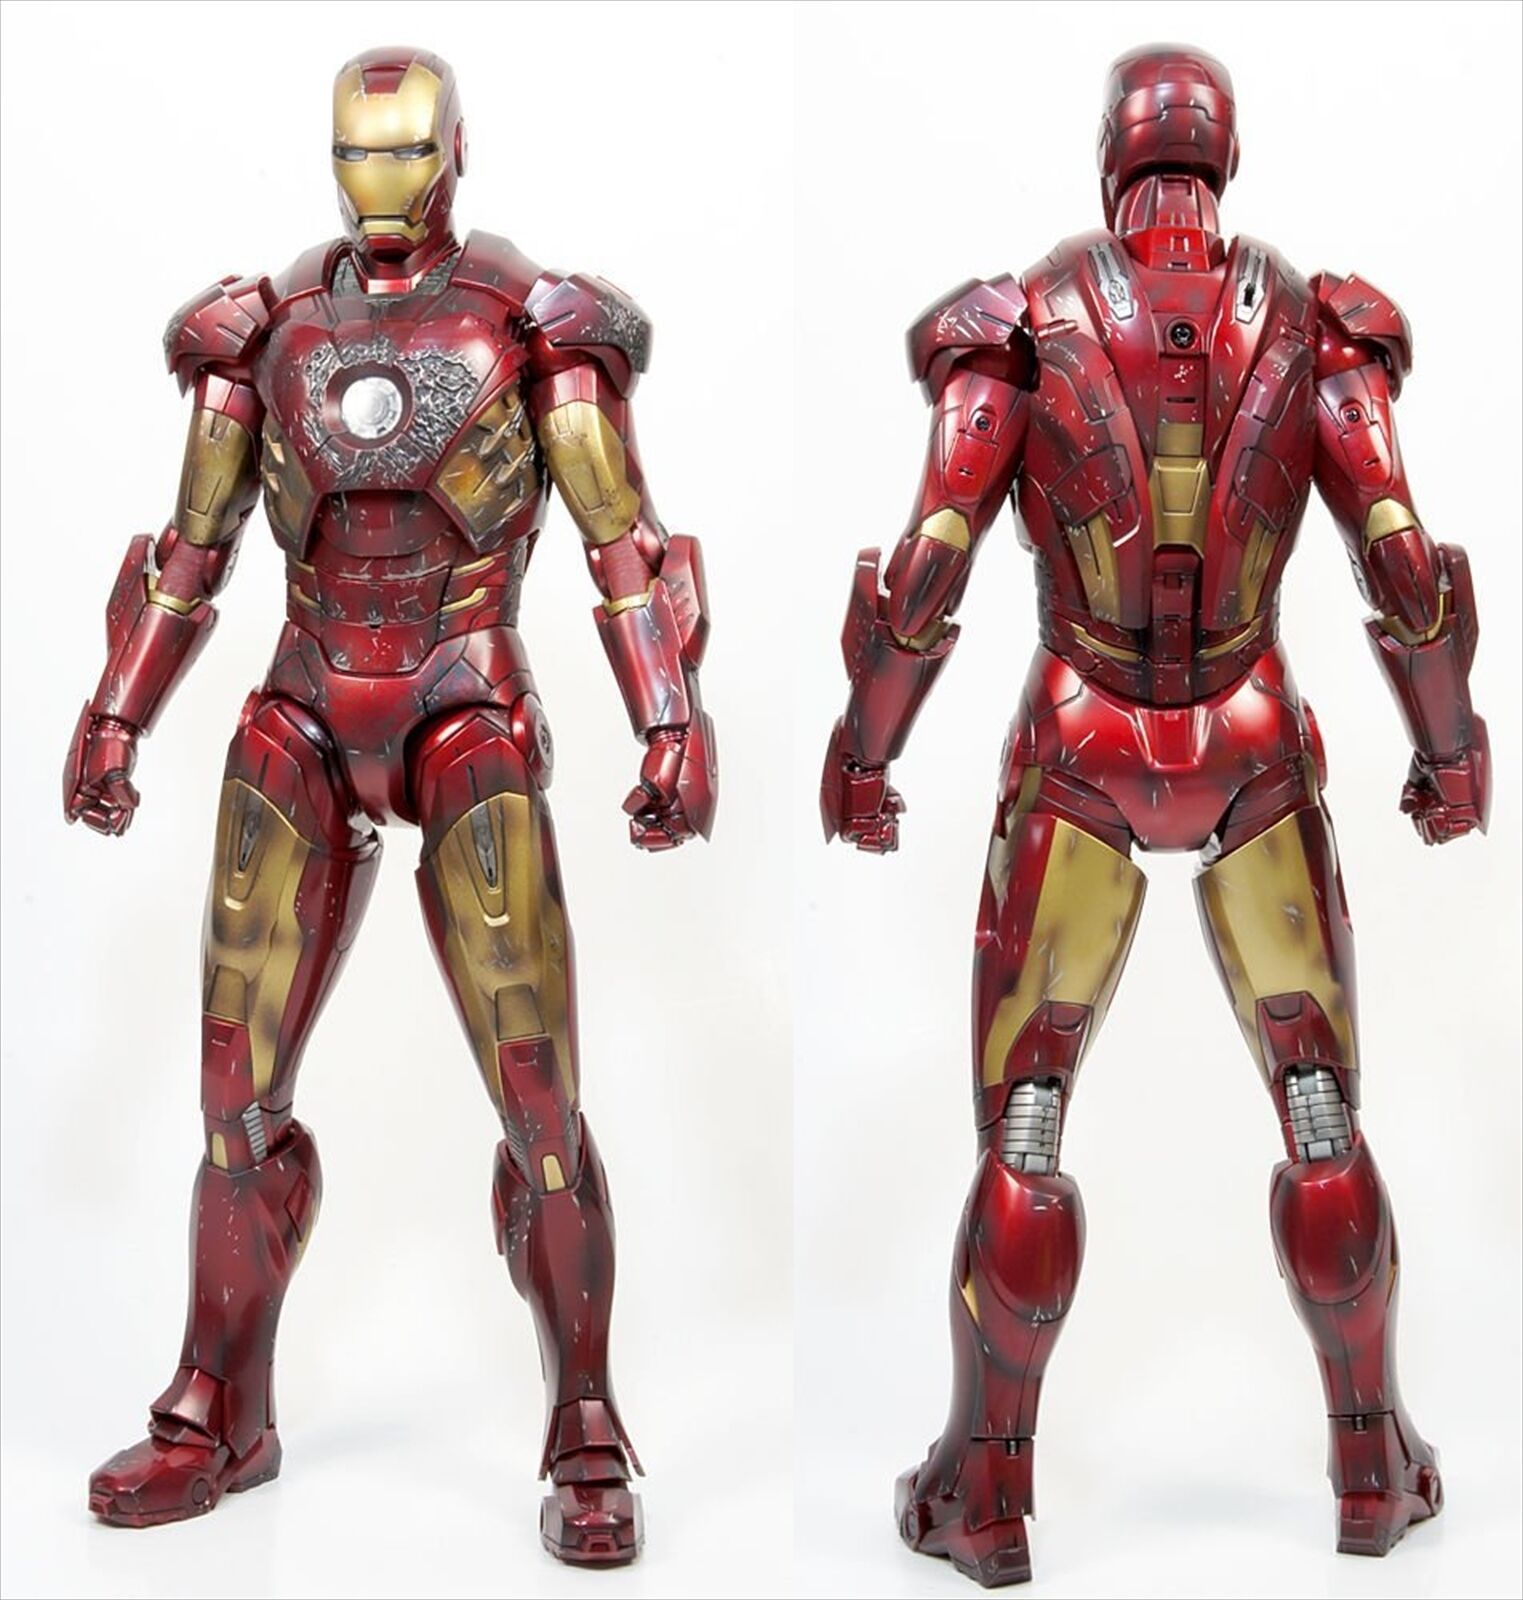 Toy sapiens Limited The Avengers Iron Man Mark VII Battle Damaged ver 1/6 Figure